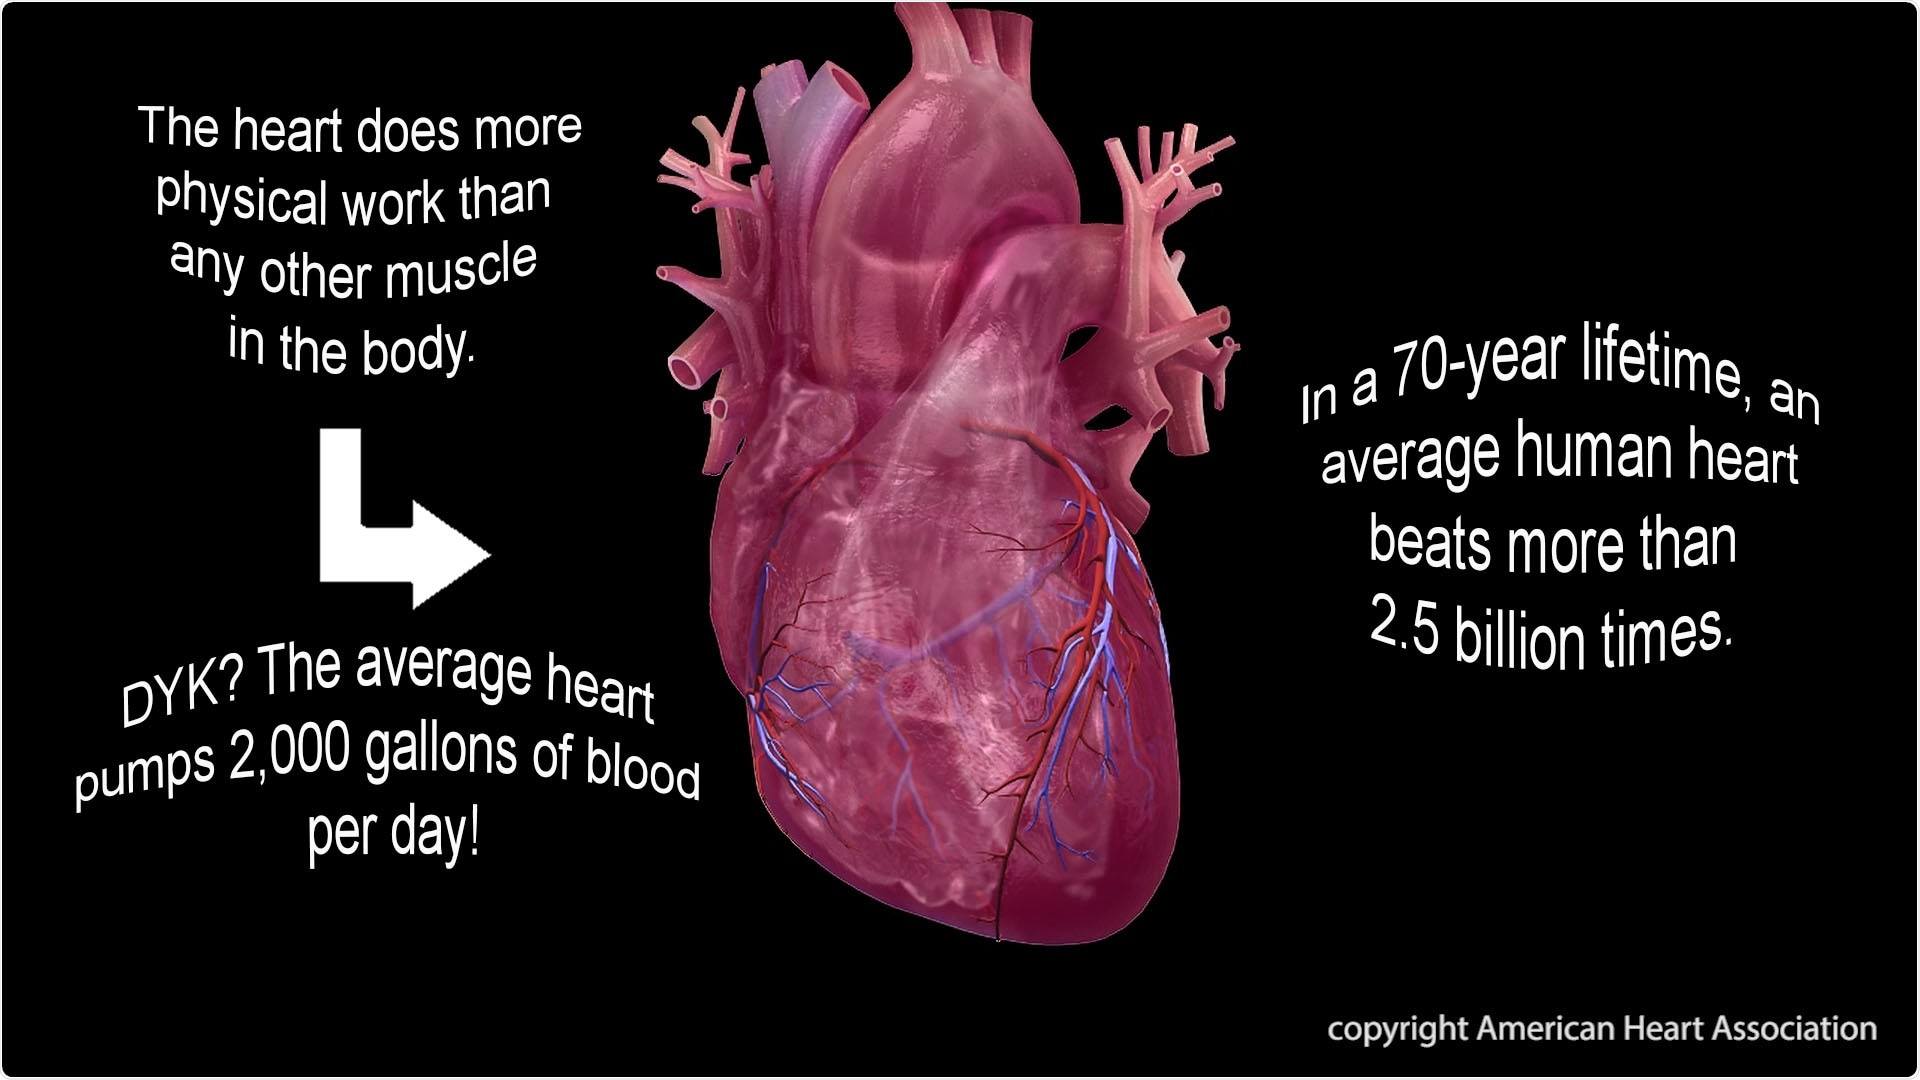 The heart does more physical work than any other muscle in the body.  The average heart pumps 2,000 gallons of blood per day!  In a 70-year lifetime, an average human heart beats more than 2.5 billion times. Image copyright American Heart Association